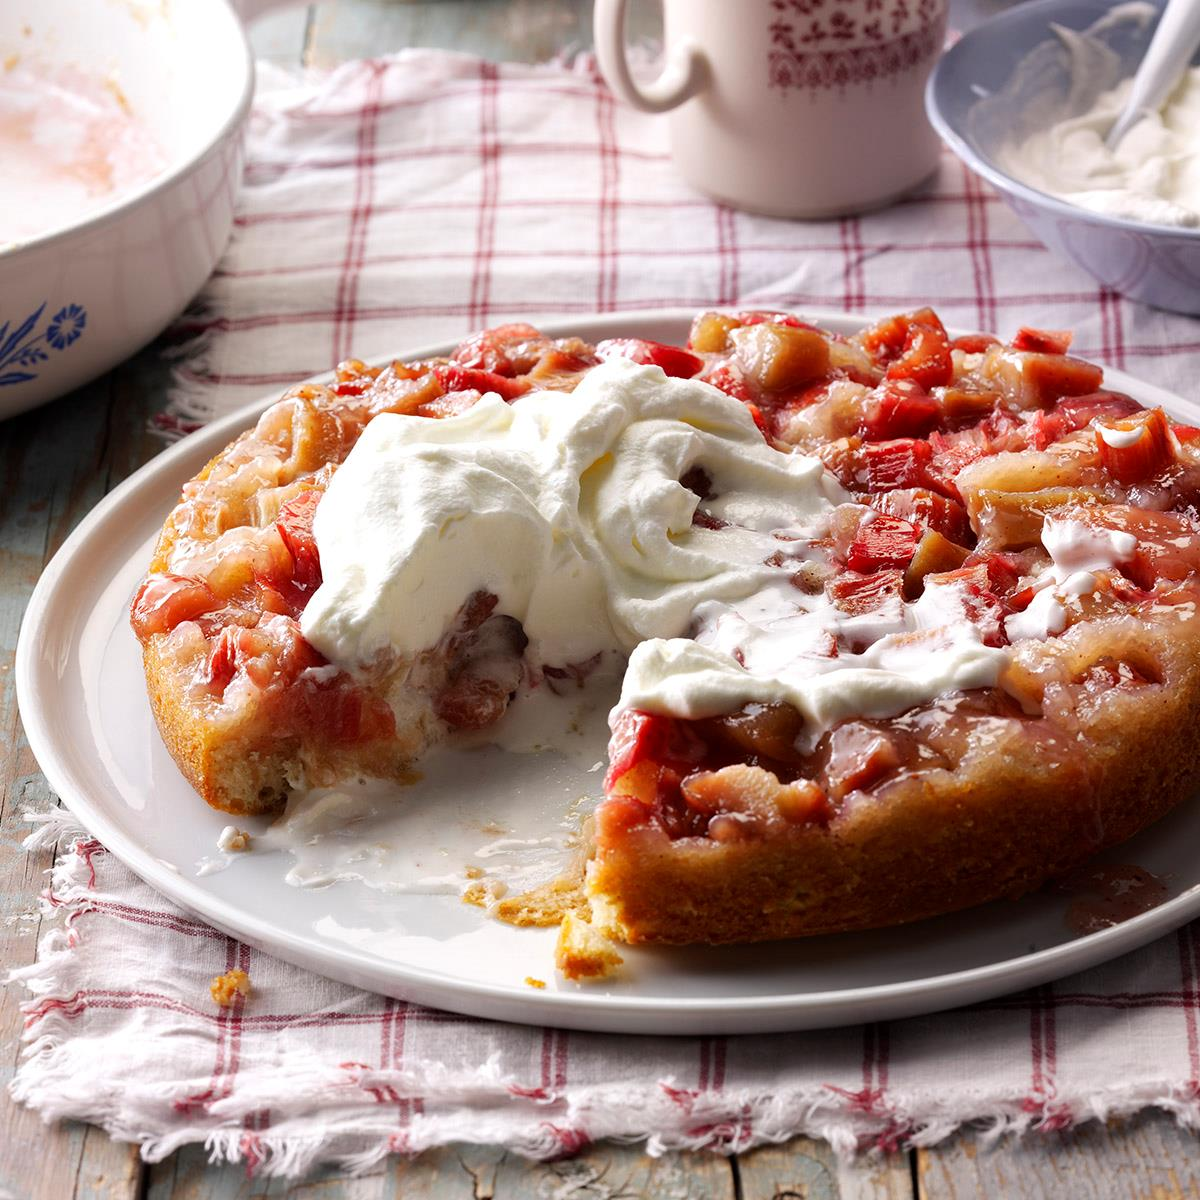 Rhubarb Upside-Down Cake recommendations